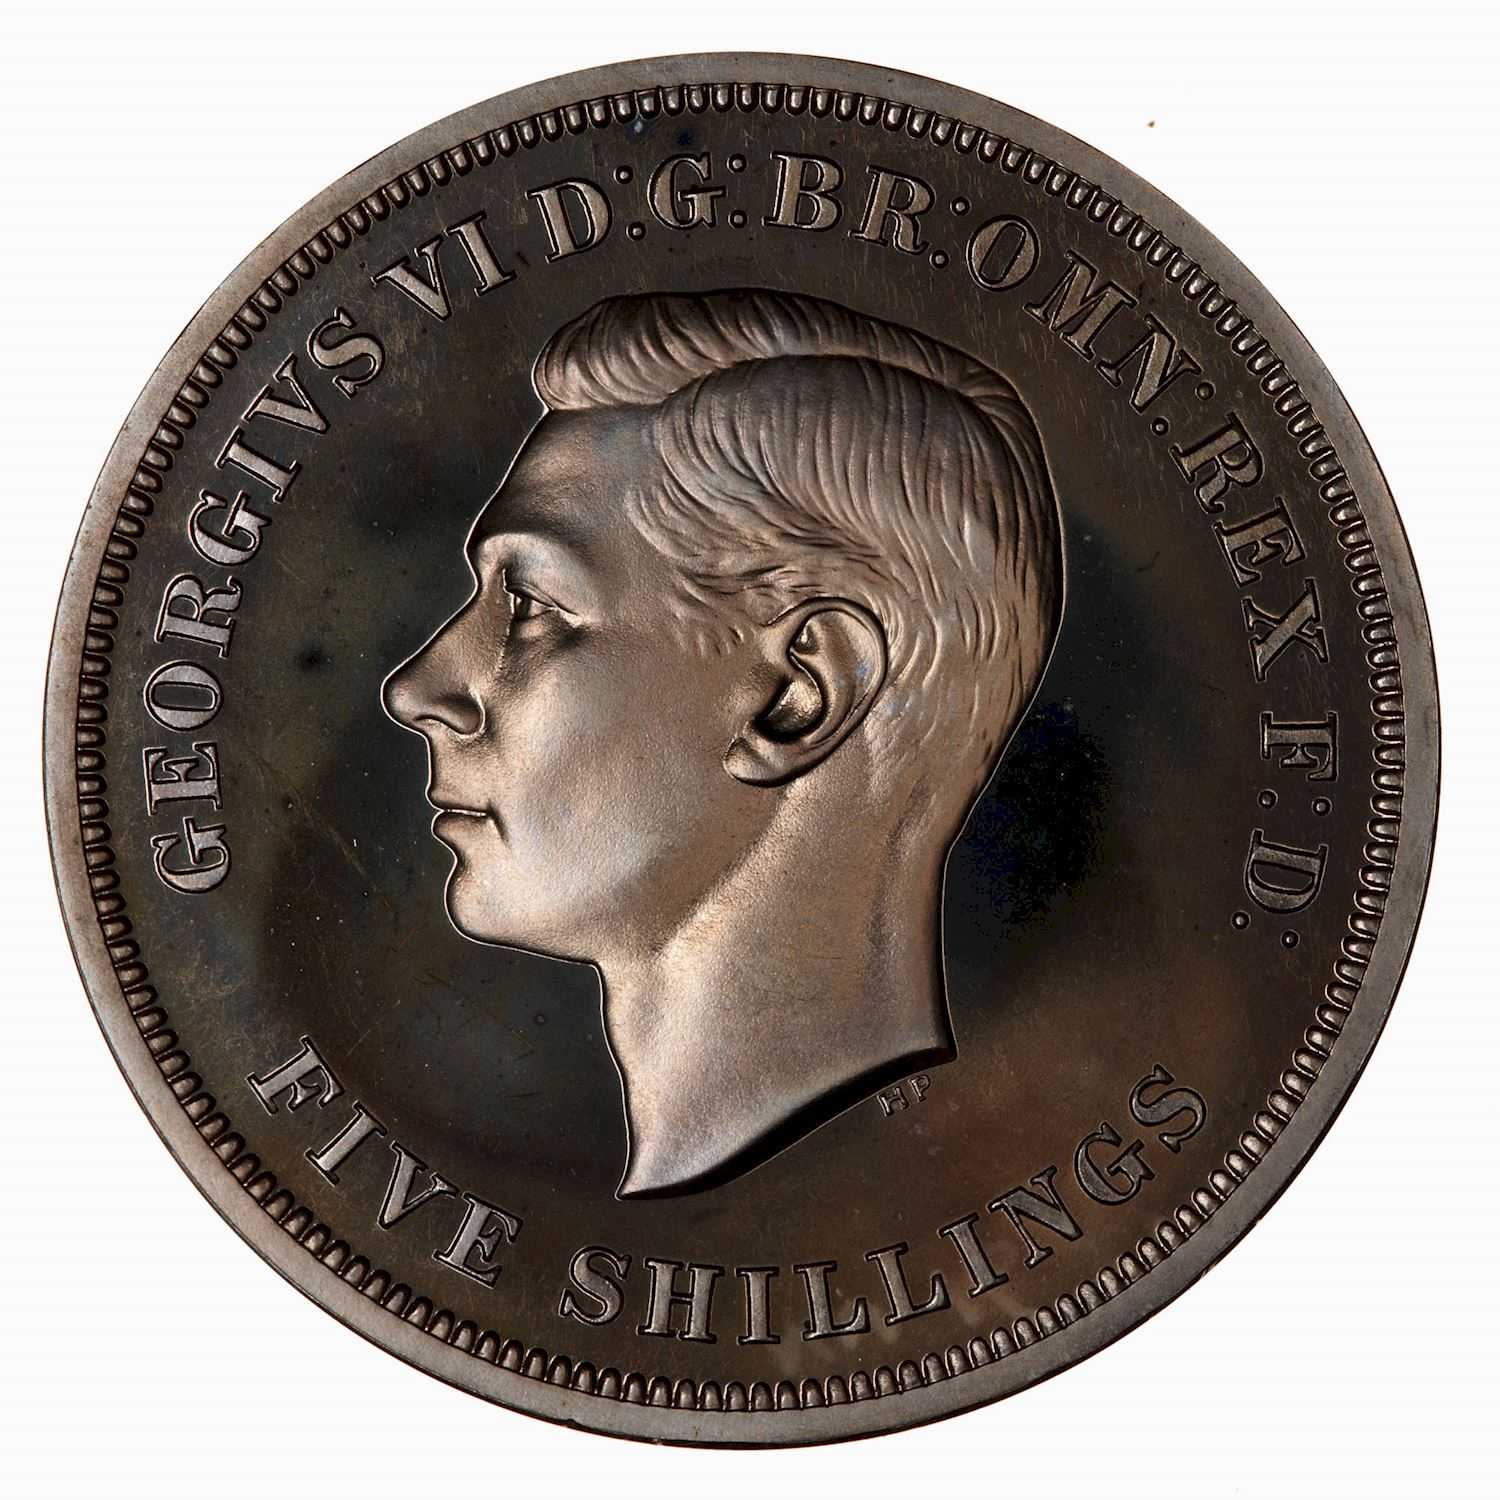 Crown (St George, CuproNickel): Photo Proof Coin - Crown, Festival of Britain, George VI, Great Britain, 1951